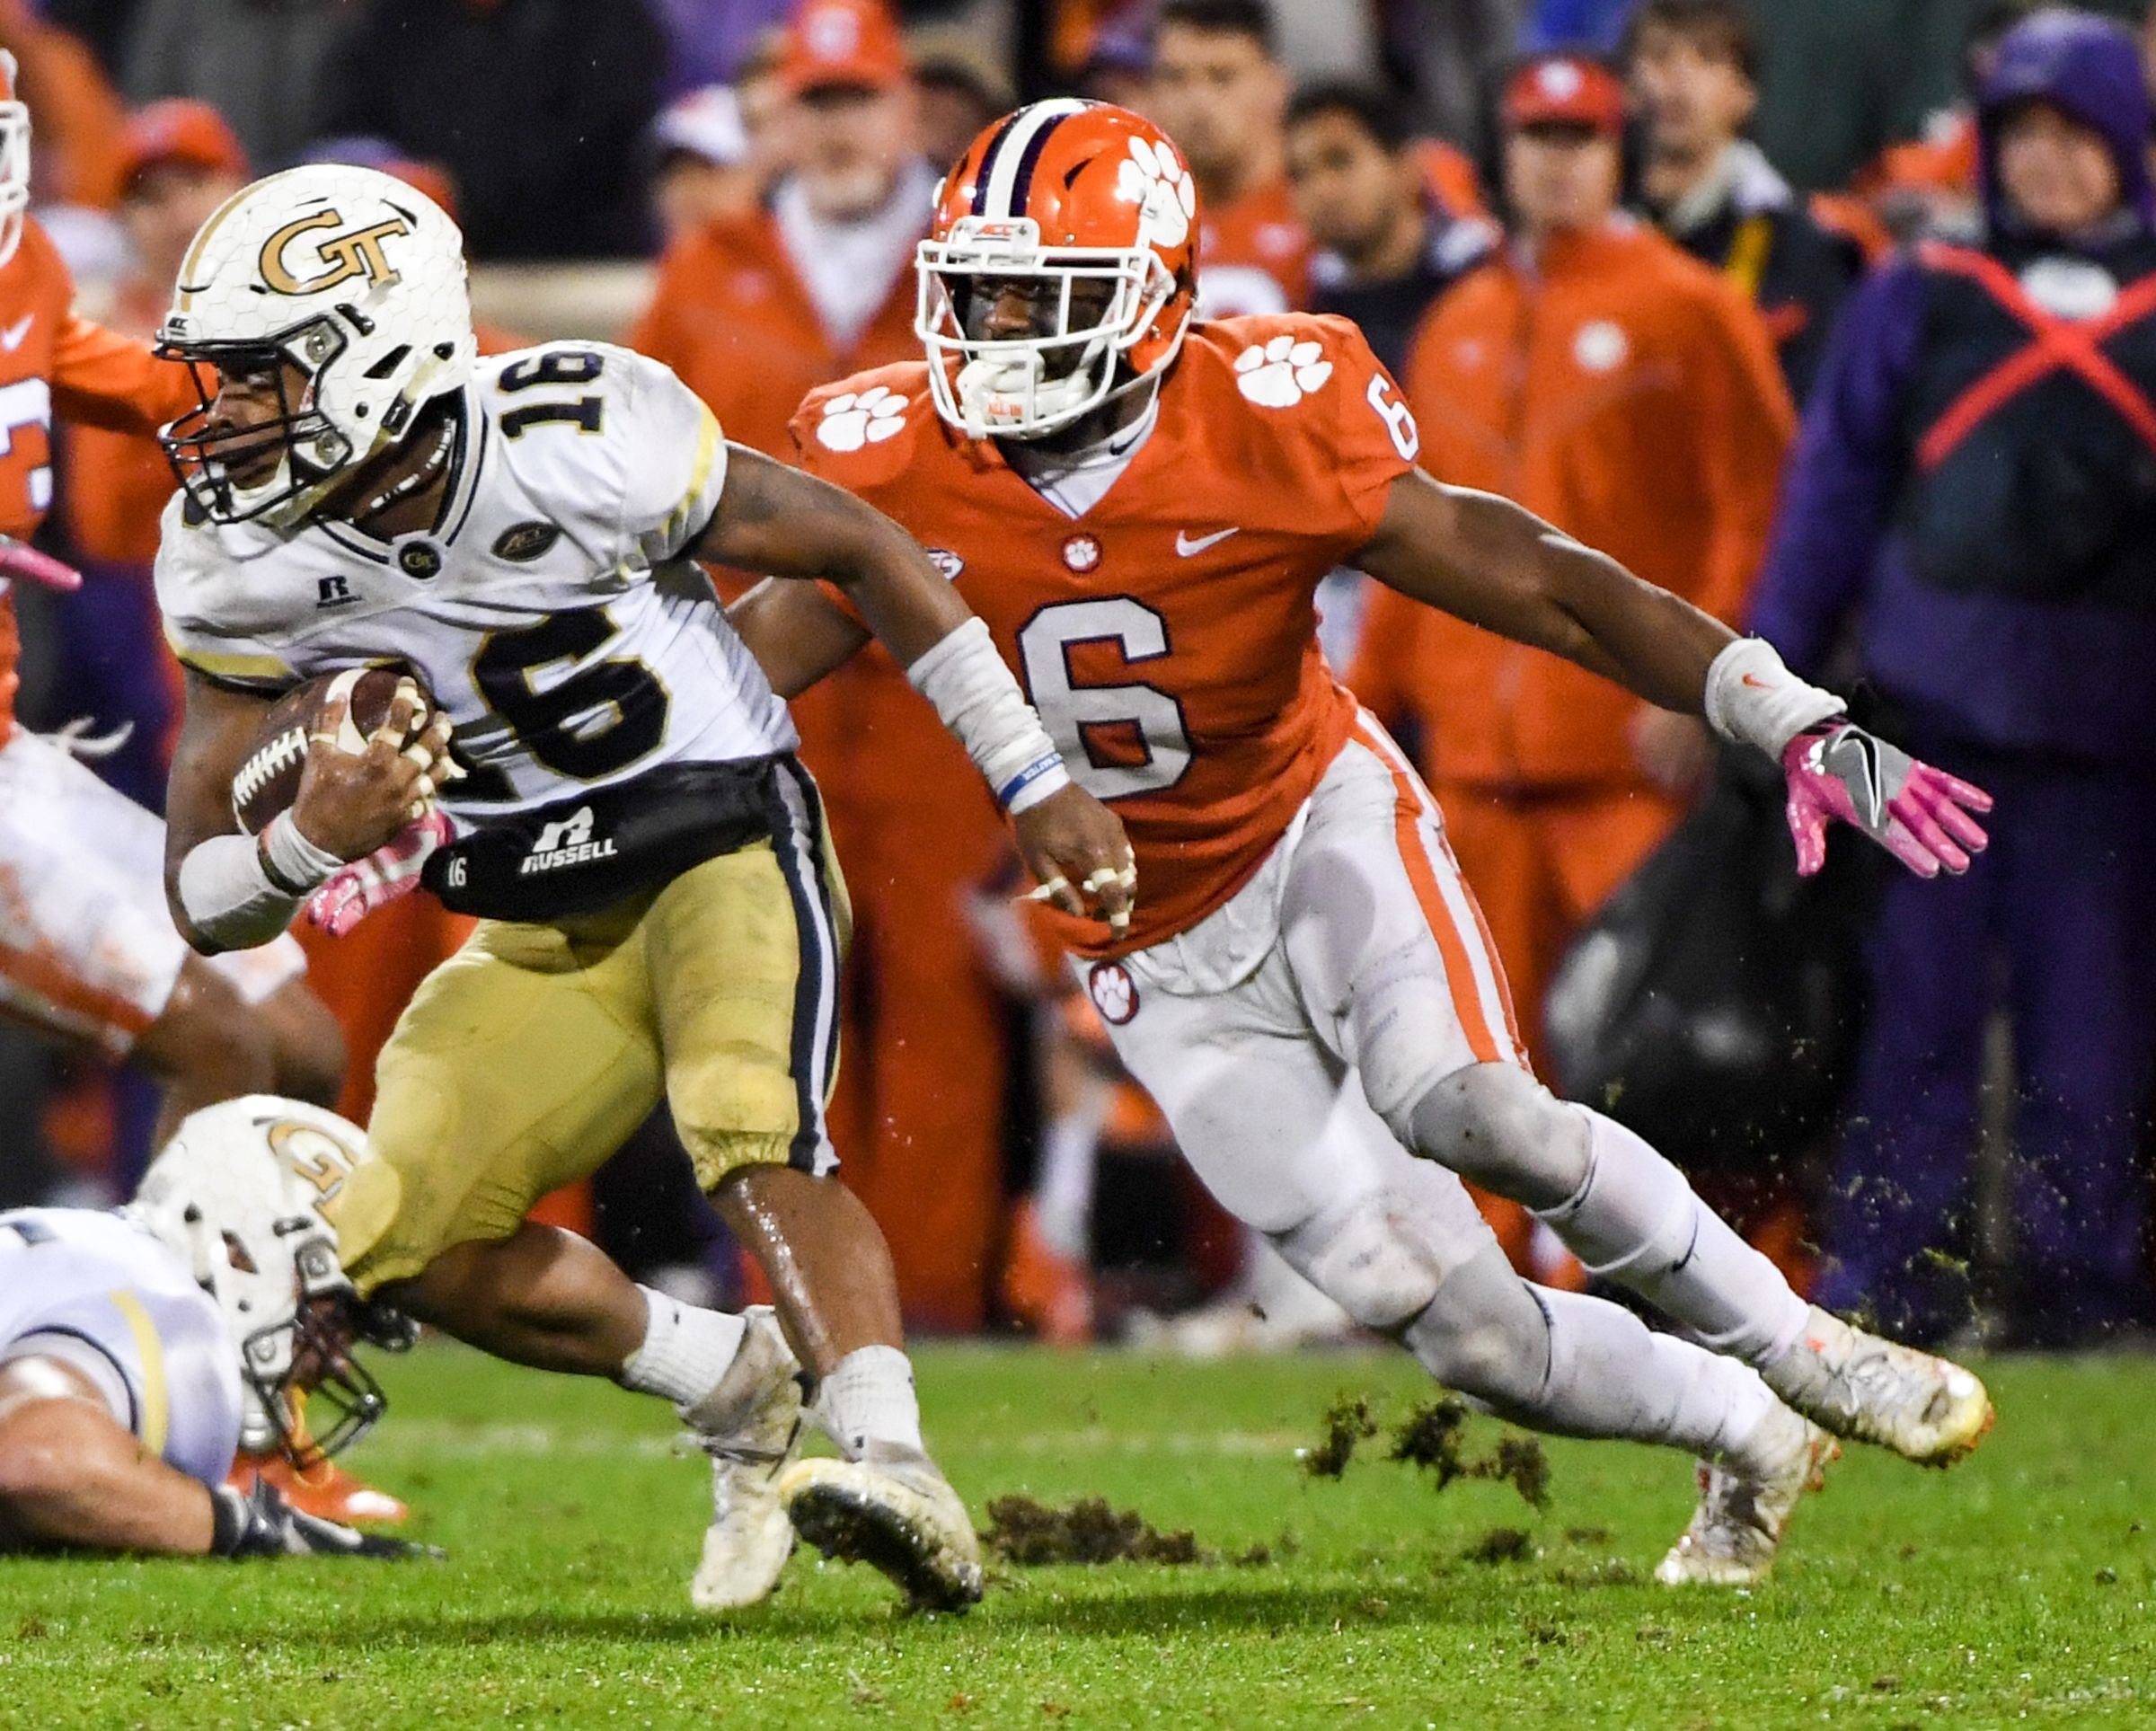 With Clemson coming to town, has Tech QB TaQuon